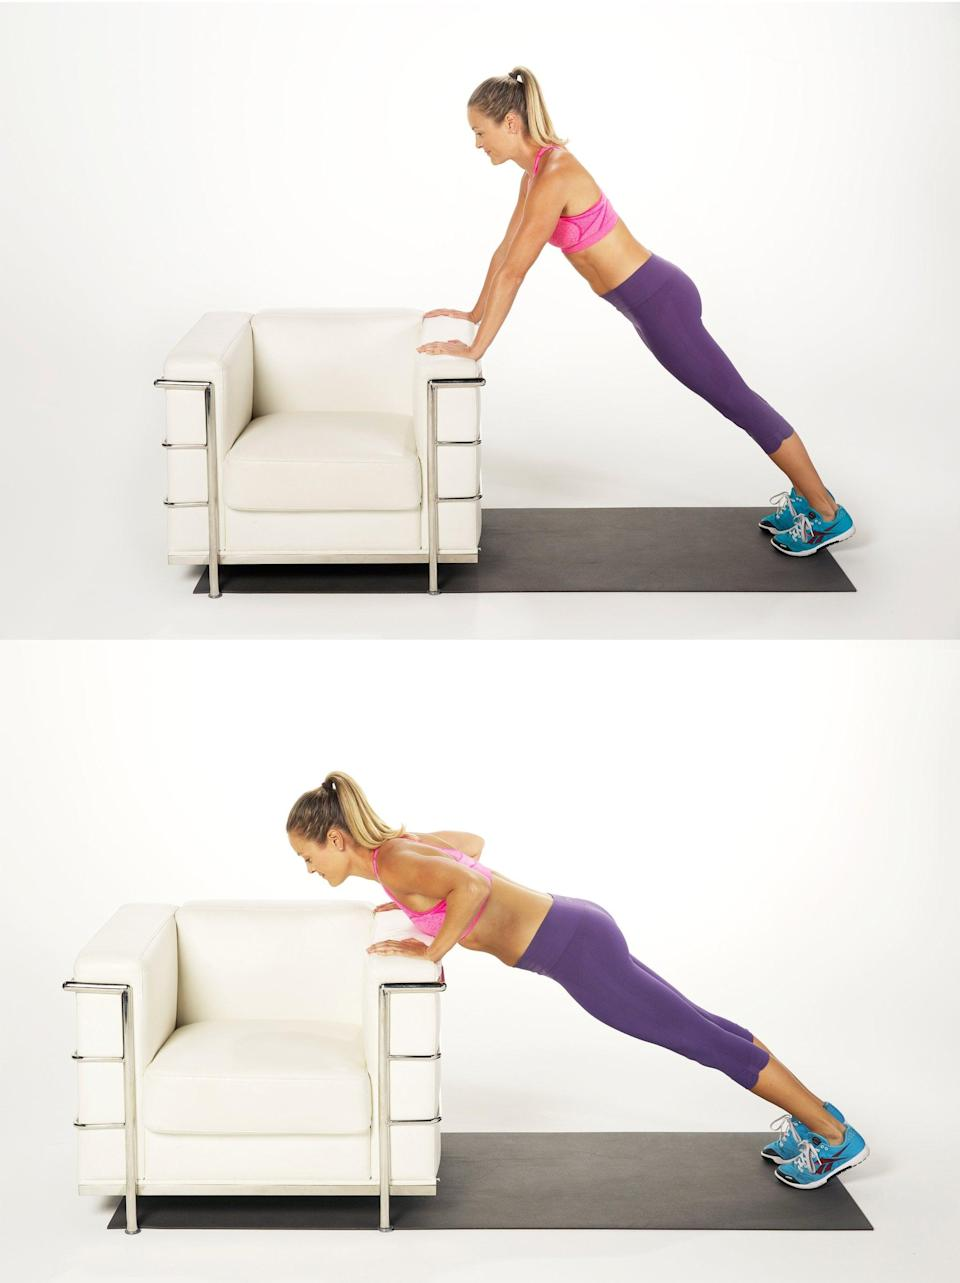 """<p>This modified push-up is recommended by Steven Mack, a certified strength and conditioning specialist at <a href=""""https://www.simplesolutionsfitness.com/"""" class=""""link rapid-noclick-resp"""" rel=""""nofollow noopener"""" target=""""_blank"""" data-ylk=""""slk:Simple Solution Fitness"""">Simple Solution Fitness</a>, who said it's a great way to teach your shoulders how to move properly in a push-up motion.</p> <ul> <li>Begin in a high plank with your hands on an elevated surface, like a bench, a couch, a sturdy chair, or a stair. (The lower the surface, the harder the move will be.) Your hands should be under your shoulders, your core pulled in toward your spine, and your back flat.</li> <li>Bend your elbows, lowering your chest to about elbow height with your triceps parallel to your ribs. Keep your core pulled in throughout the movement.</li> <li>Drive through your hands to push away from the surface until your arms are straight and you're back in the high plank position.</li> <li>This counts as one rep.</li> </ul>"""